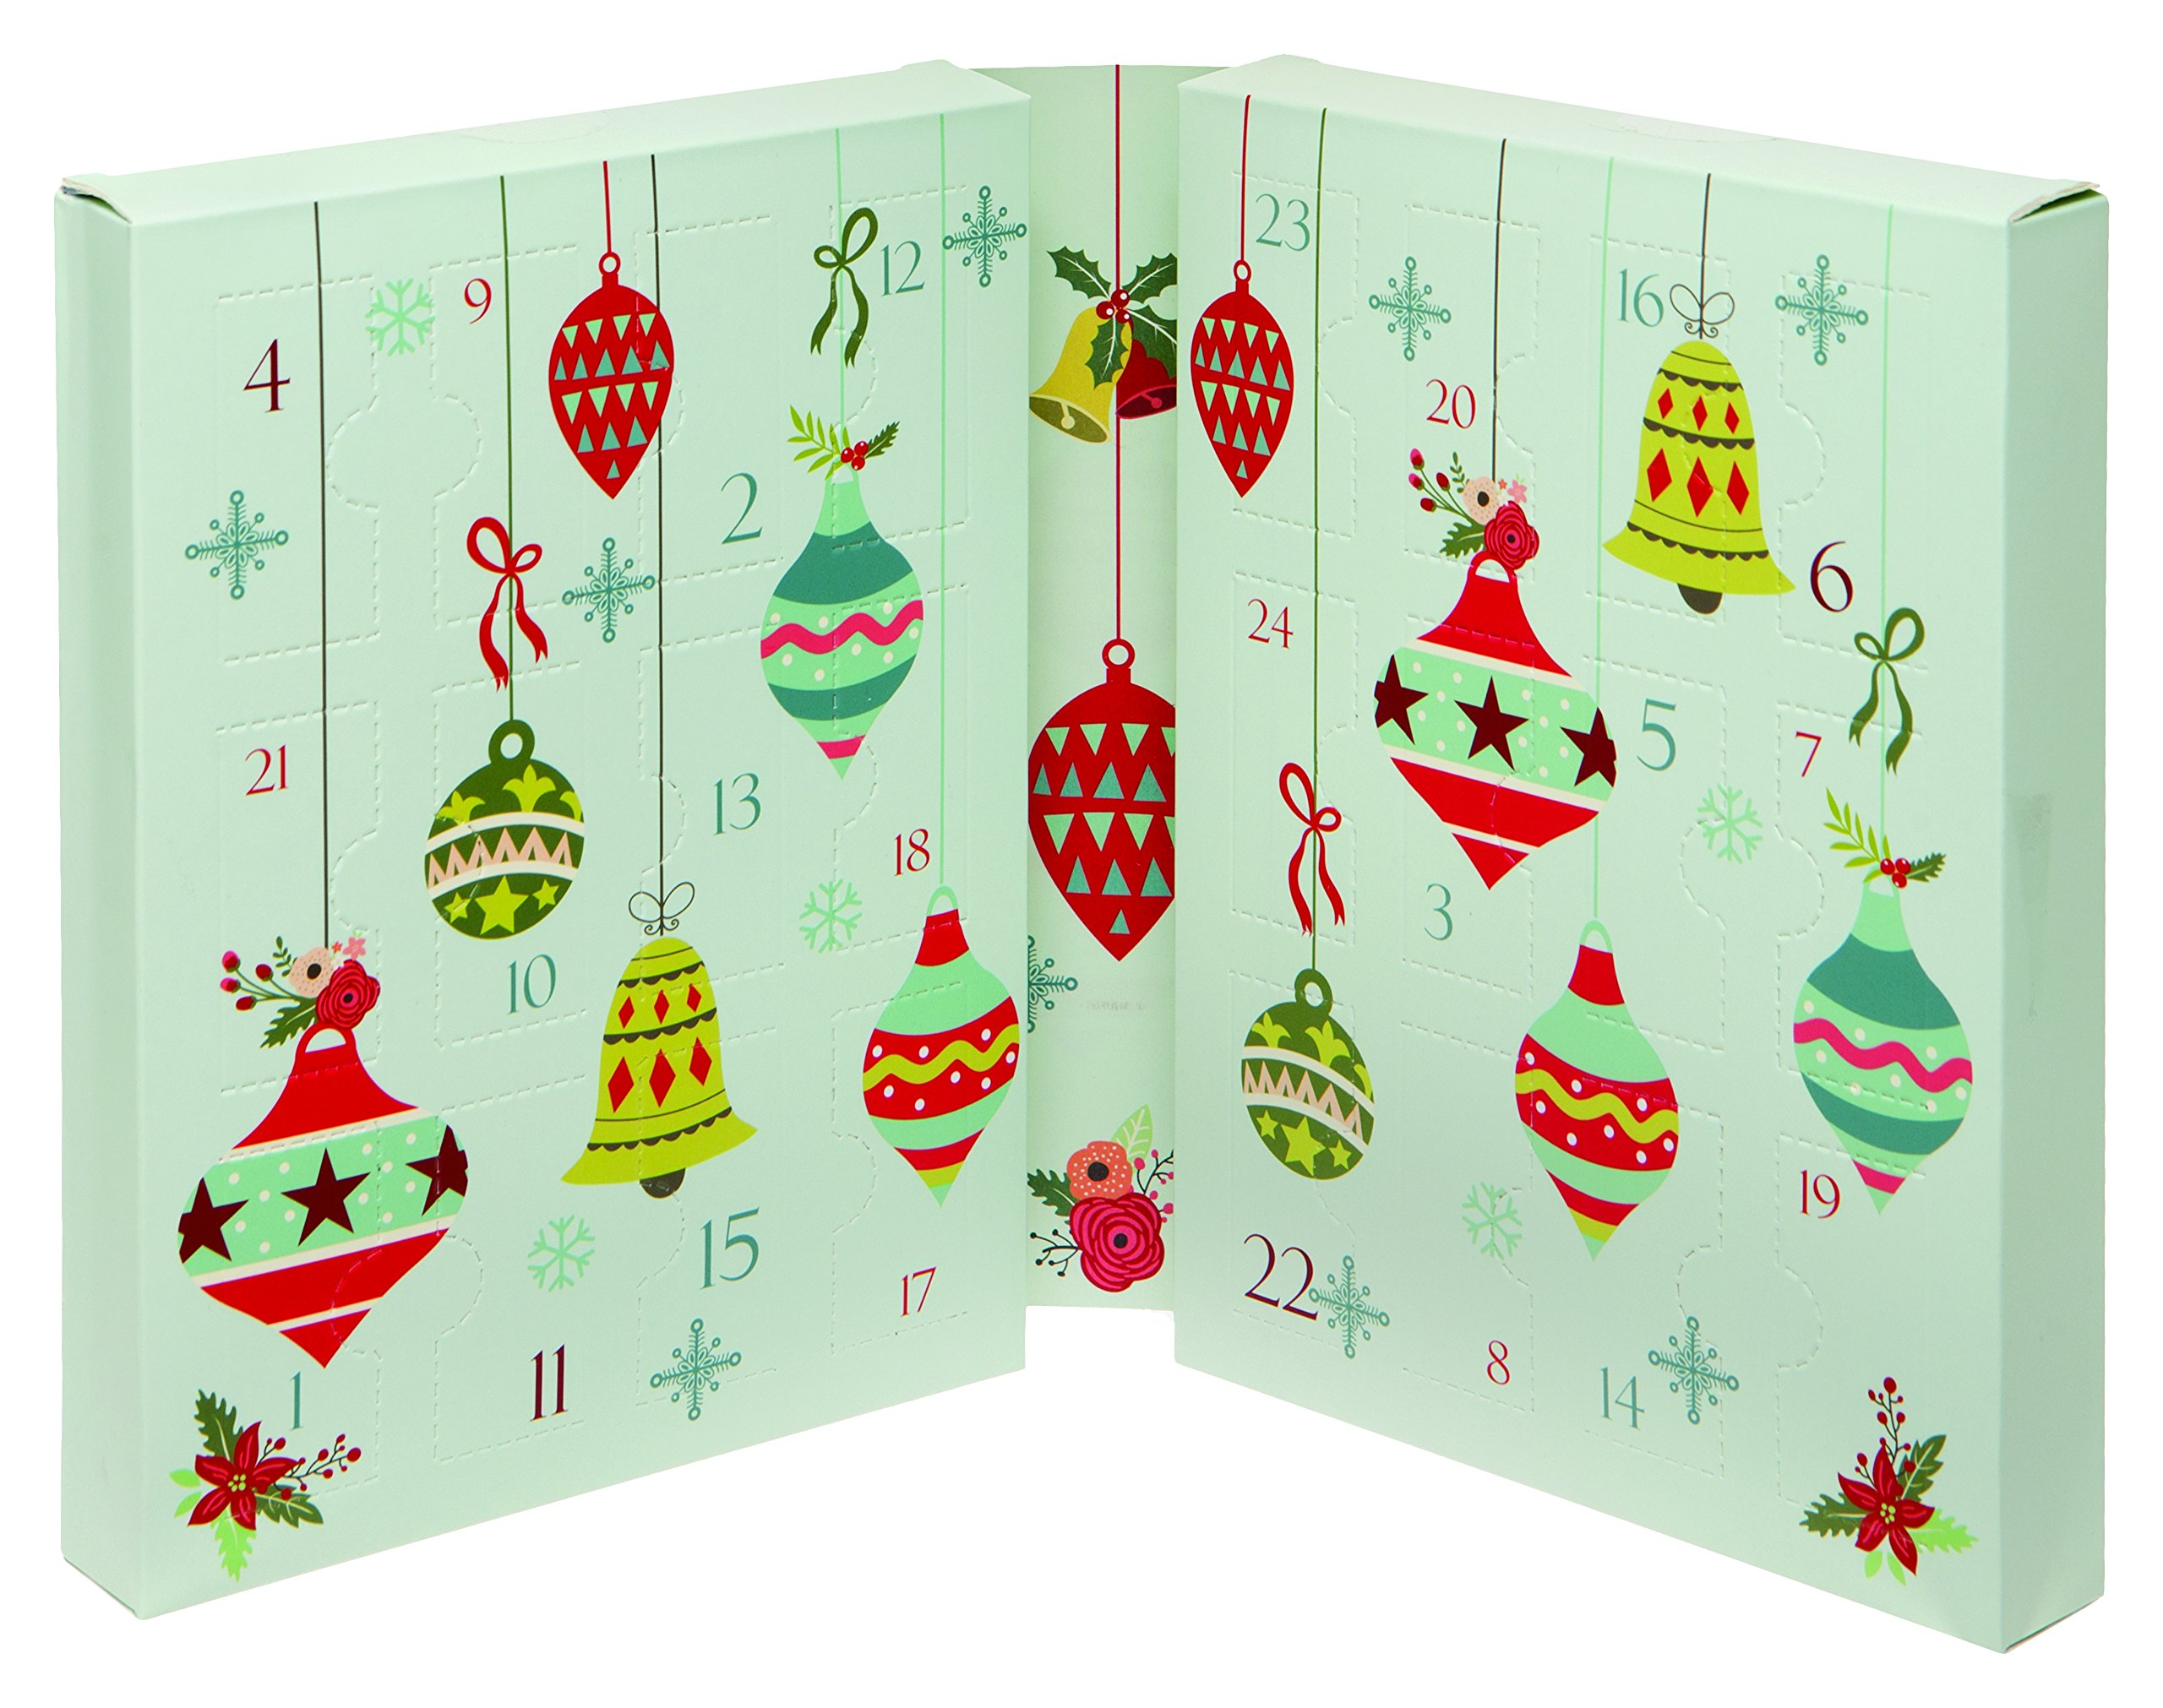 technic-nail-varnish-advent-calendar